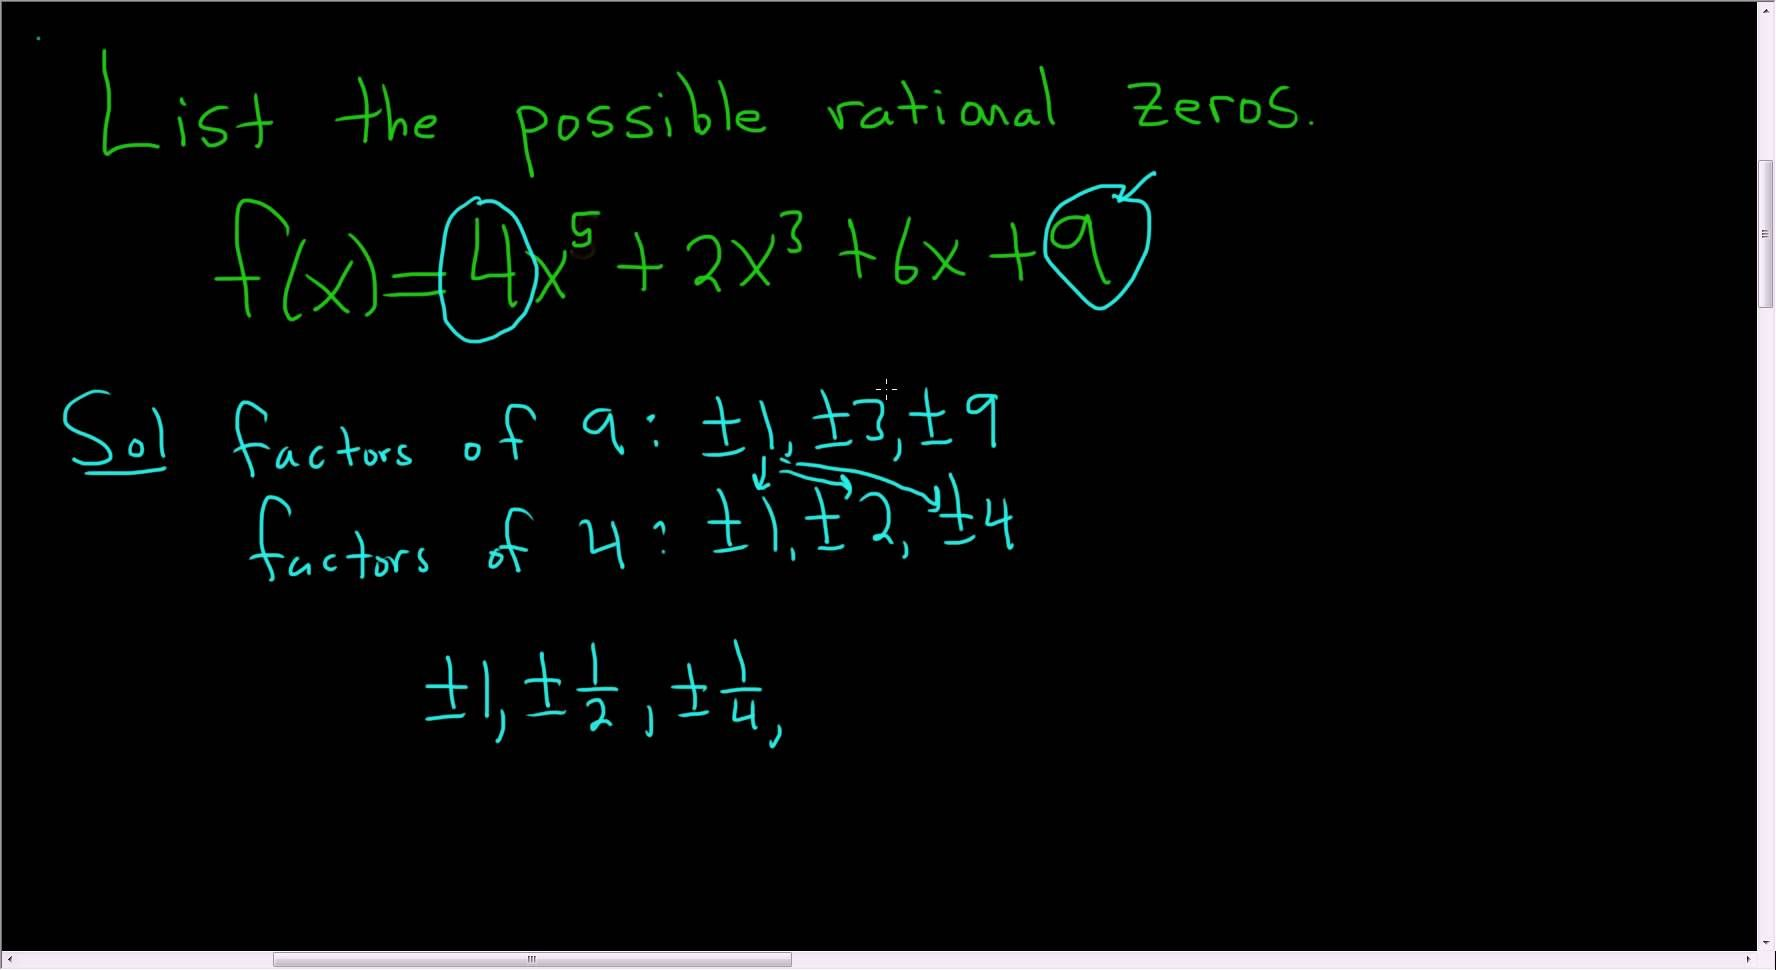 Listing The Possible Rational Roots Zeros